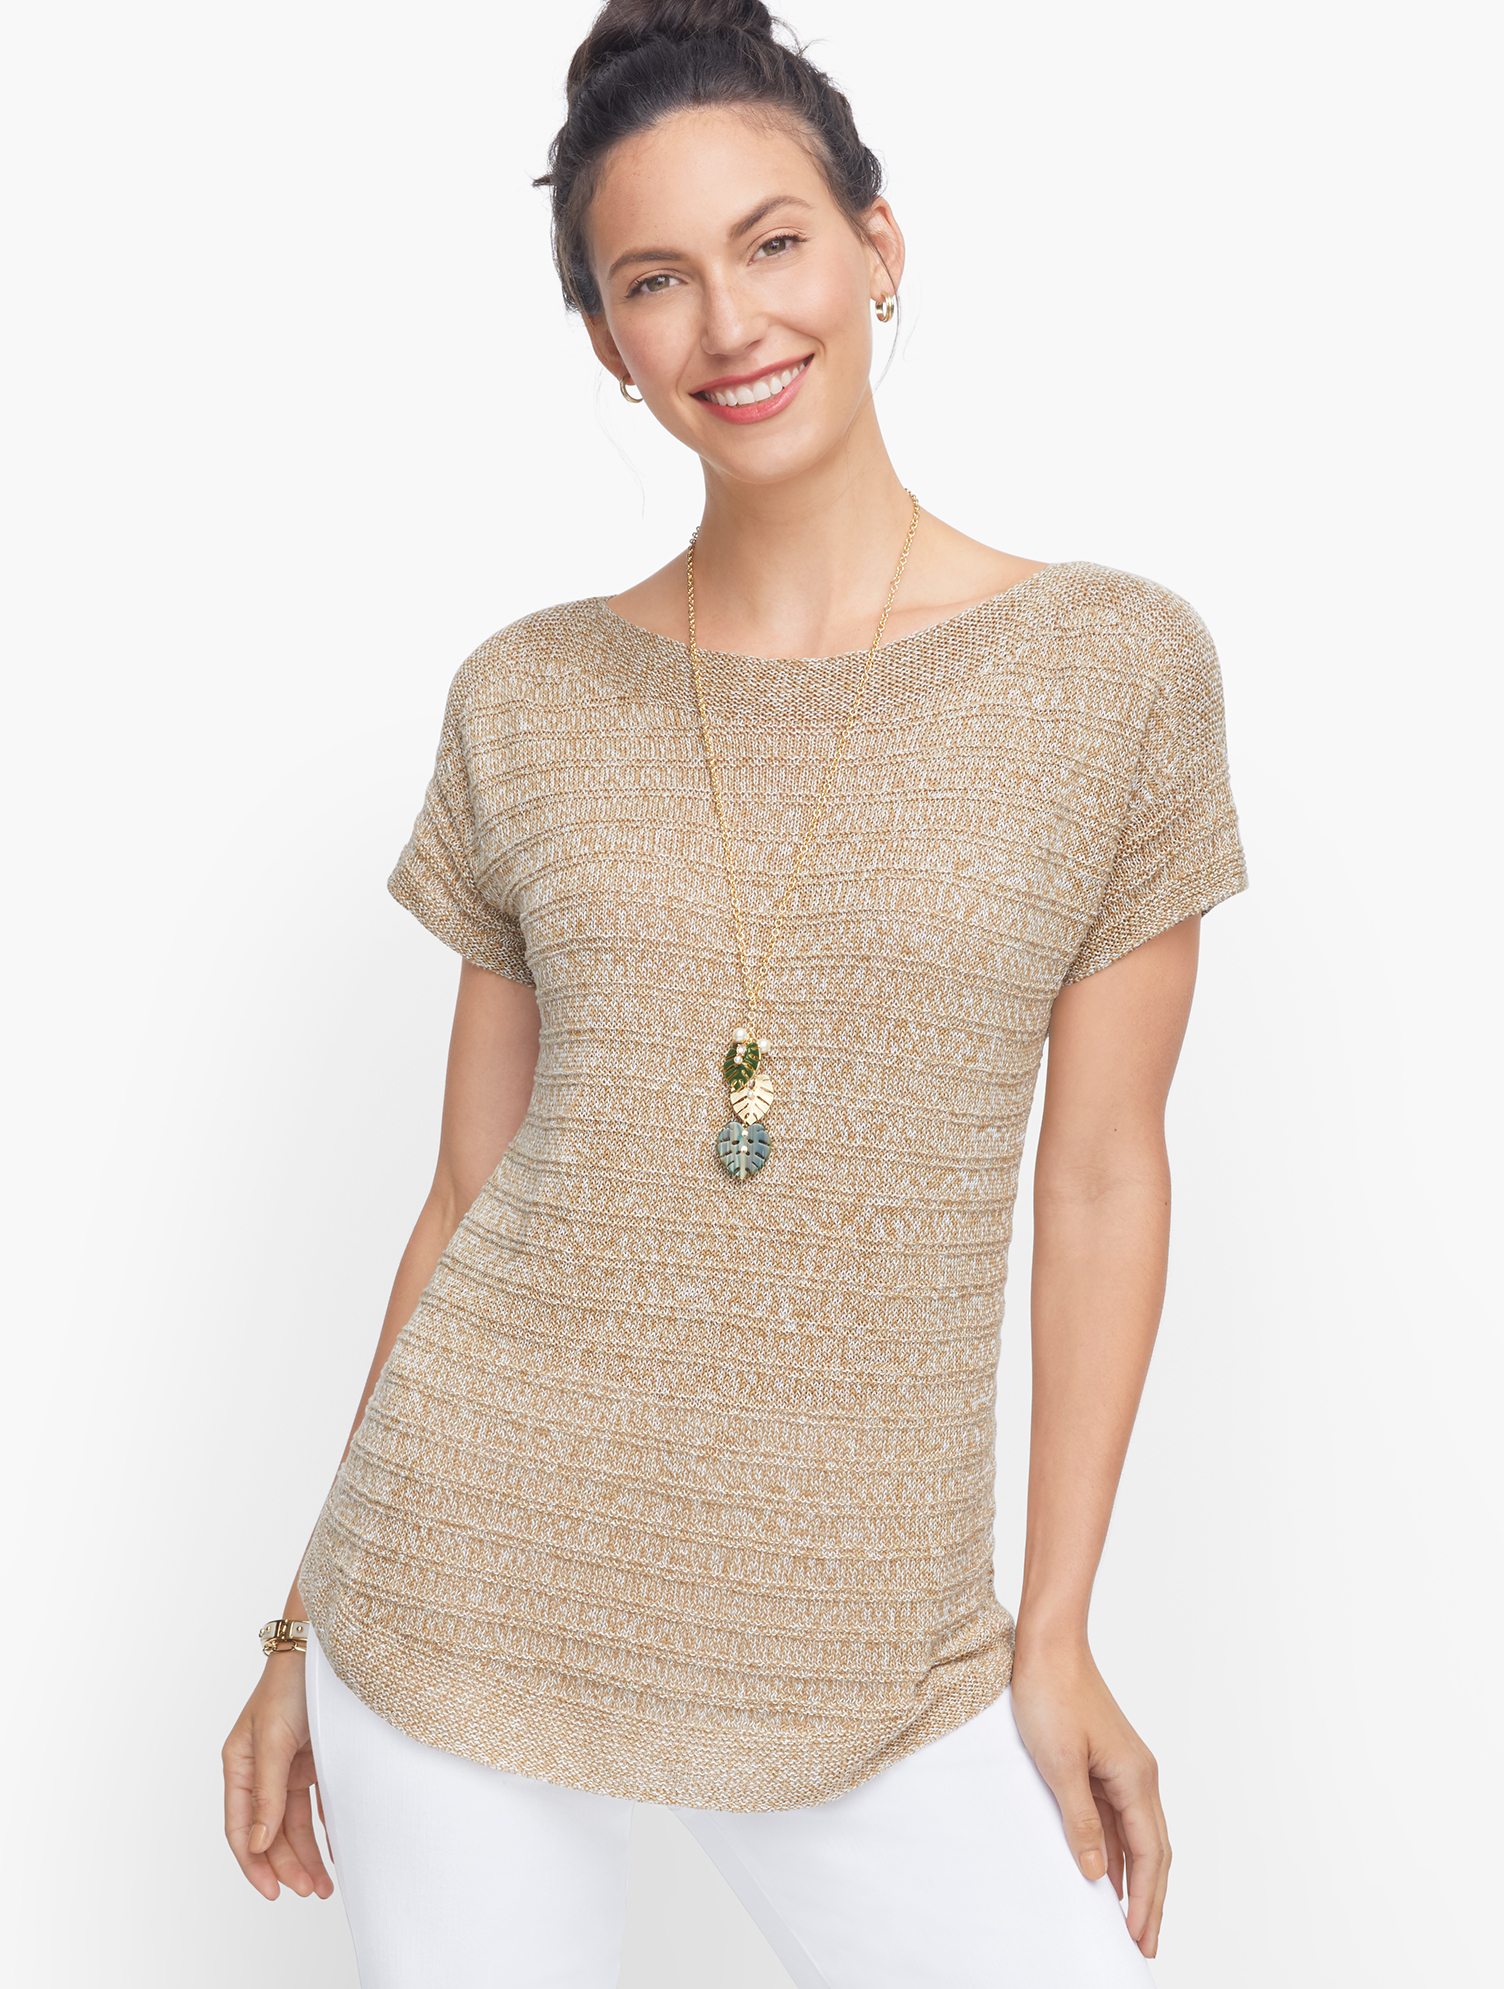 Textured linen. Easy sweater. Pairs with nearly anything effortlessly. Features Sleeve length: Short Neckline: Bateau Hits: At hip Closure: Pullover Imported Fit: Misses: 25 1/2 inches; Petite: 24 inches; Plus 27 1/2 inches Material: 100% Linen Care: Machine Wash; Reshape, Lay flat to dry Chunky Knit Linen Sweater- Marled - Neutral Marl - XL Talbots